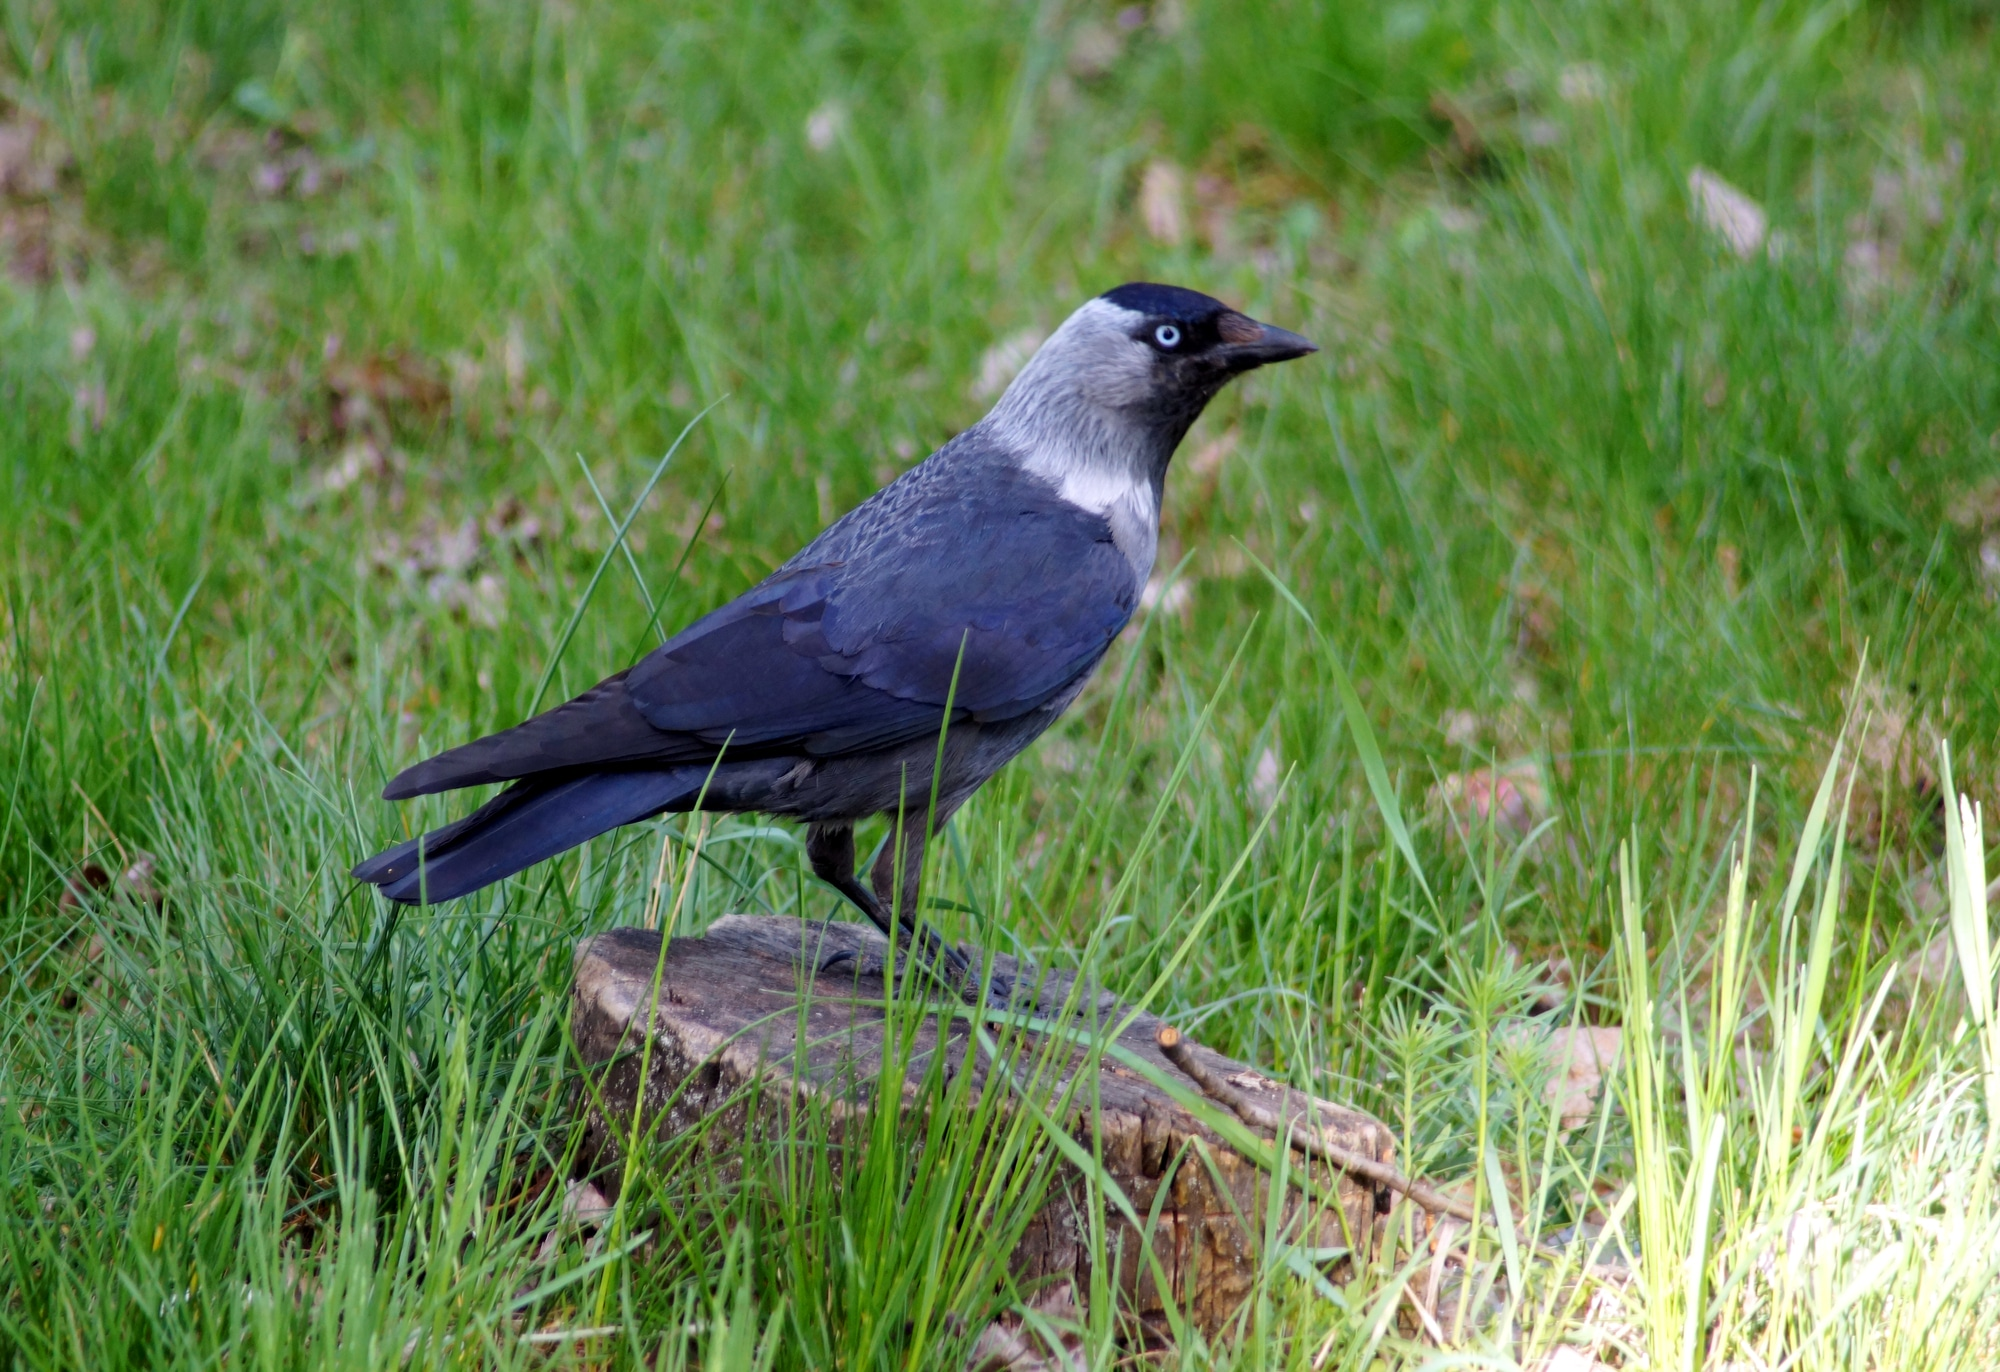 European jackdaw, is a passerine bird in the crow family.